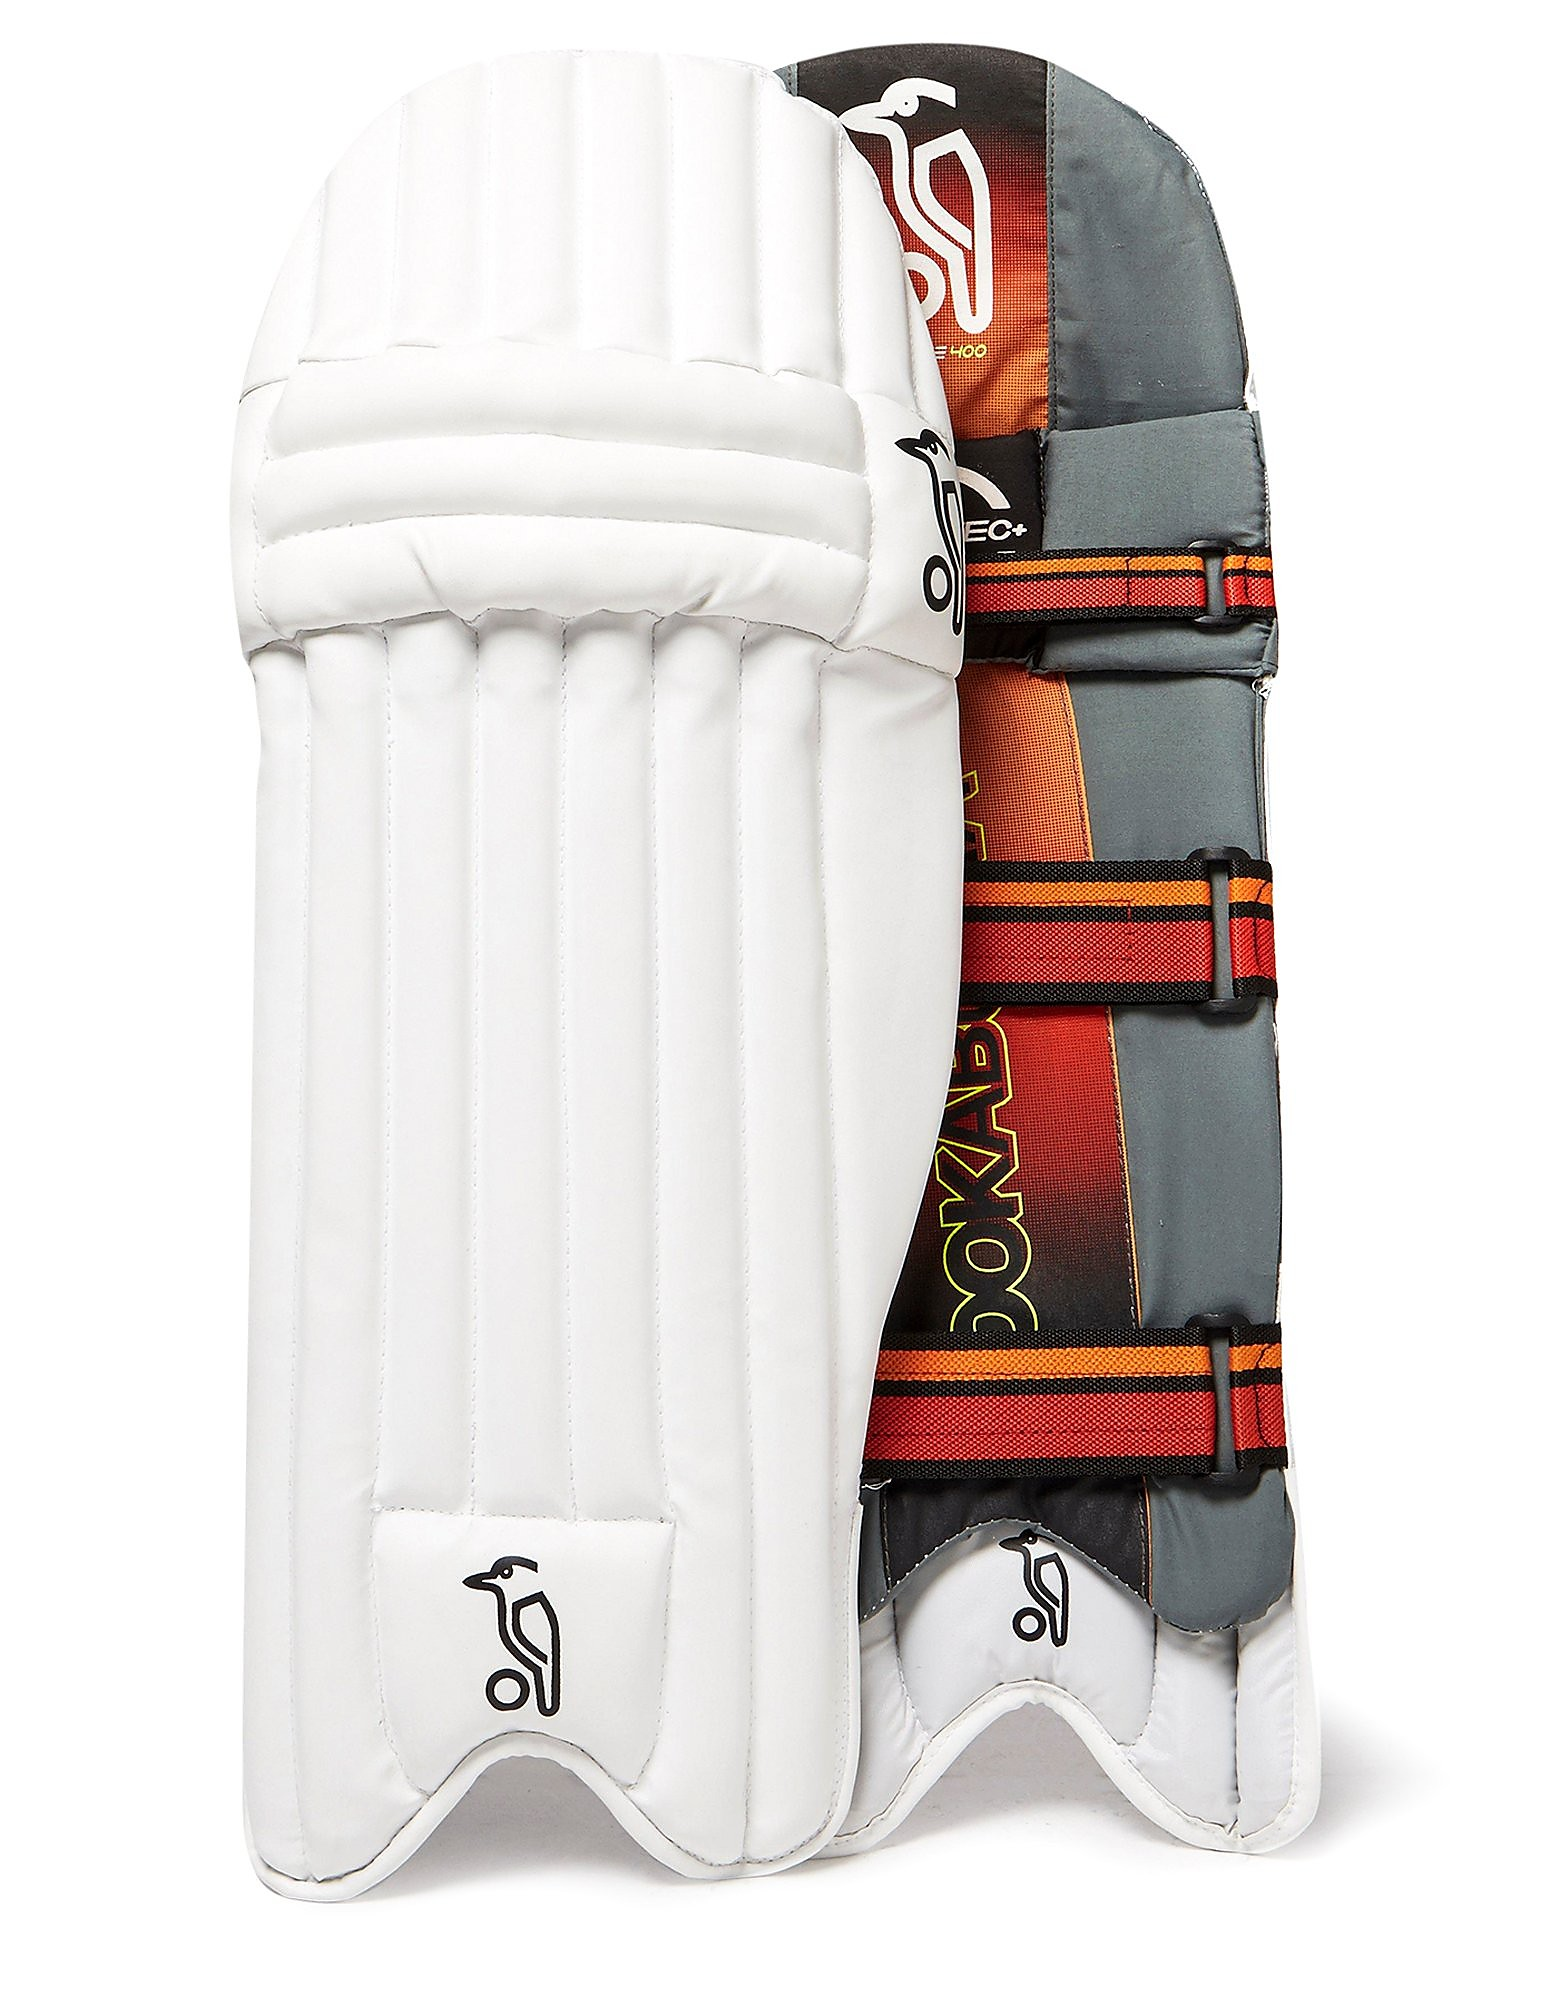 Kookaburra Blaze 400 Mens Batting Pads